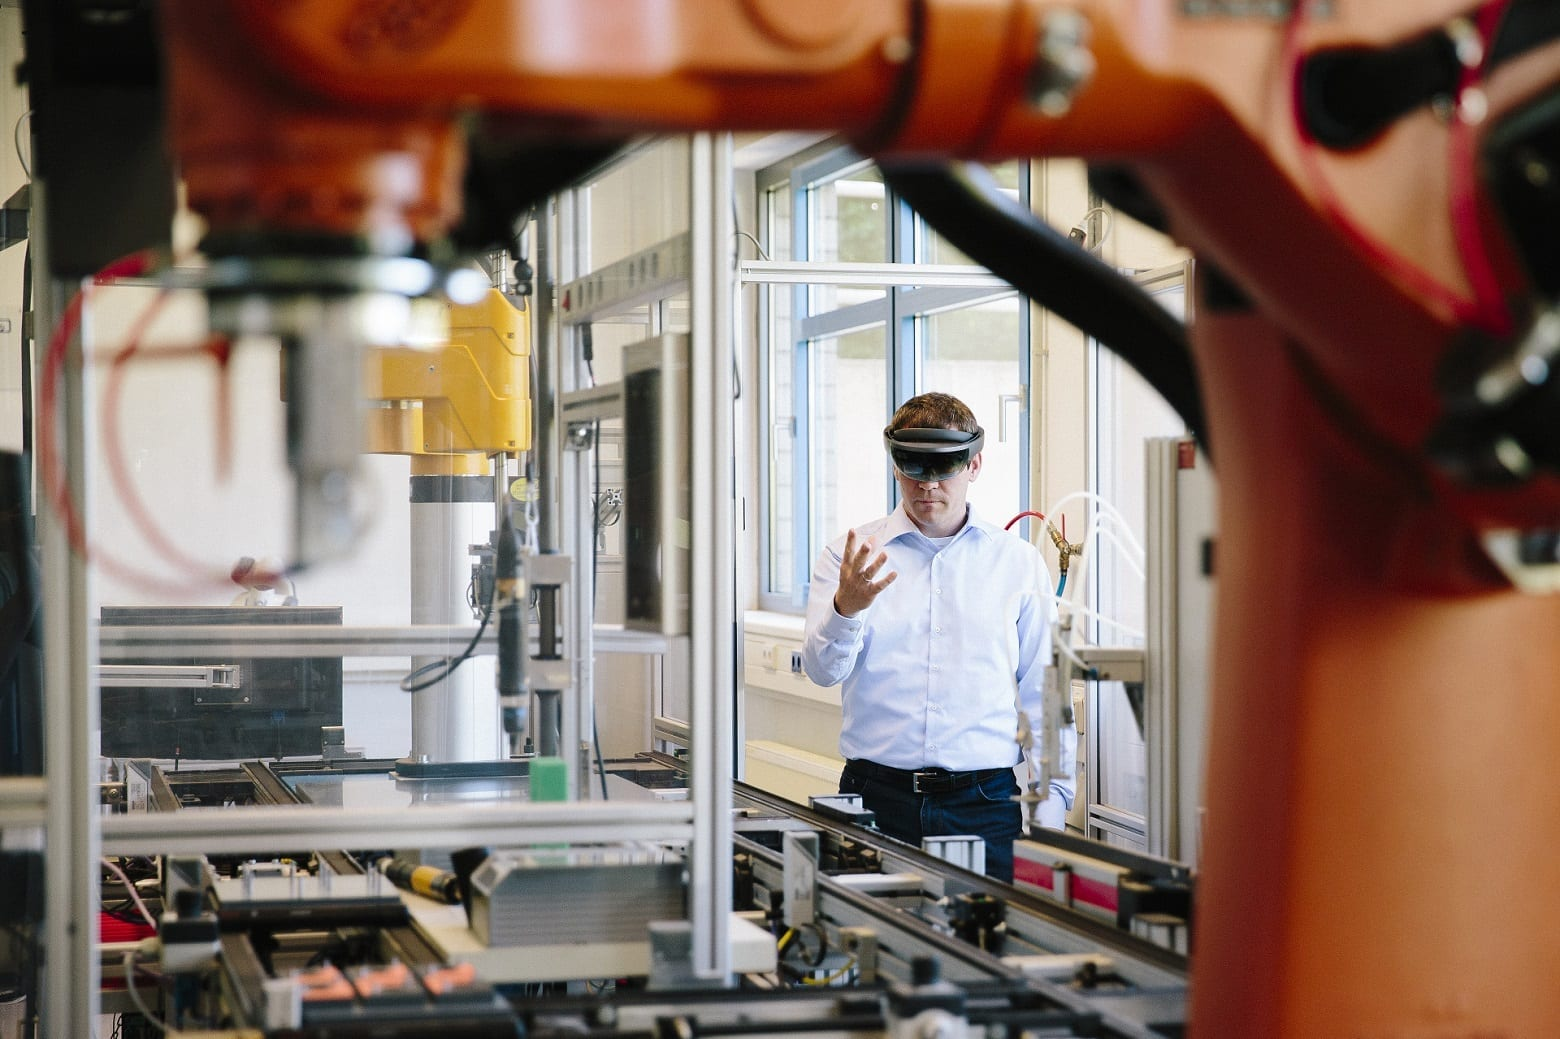 engineer works with a HoloLens: place a virtual robotic arm into the production line